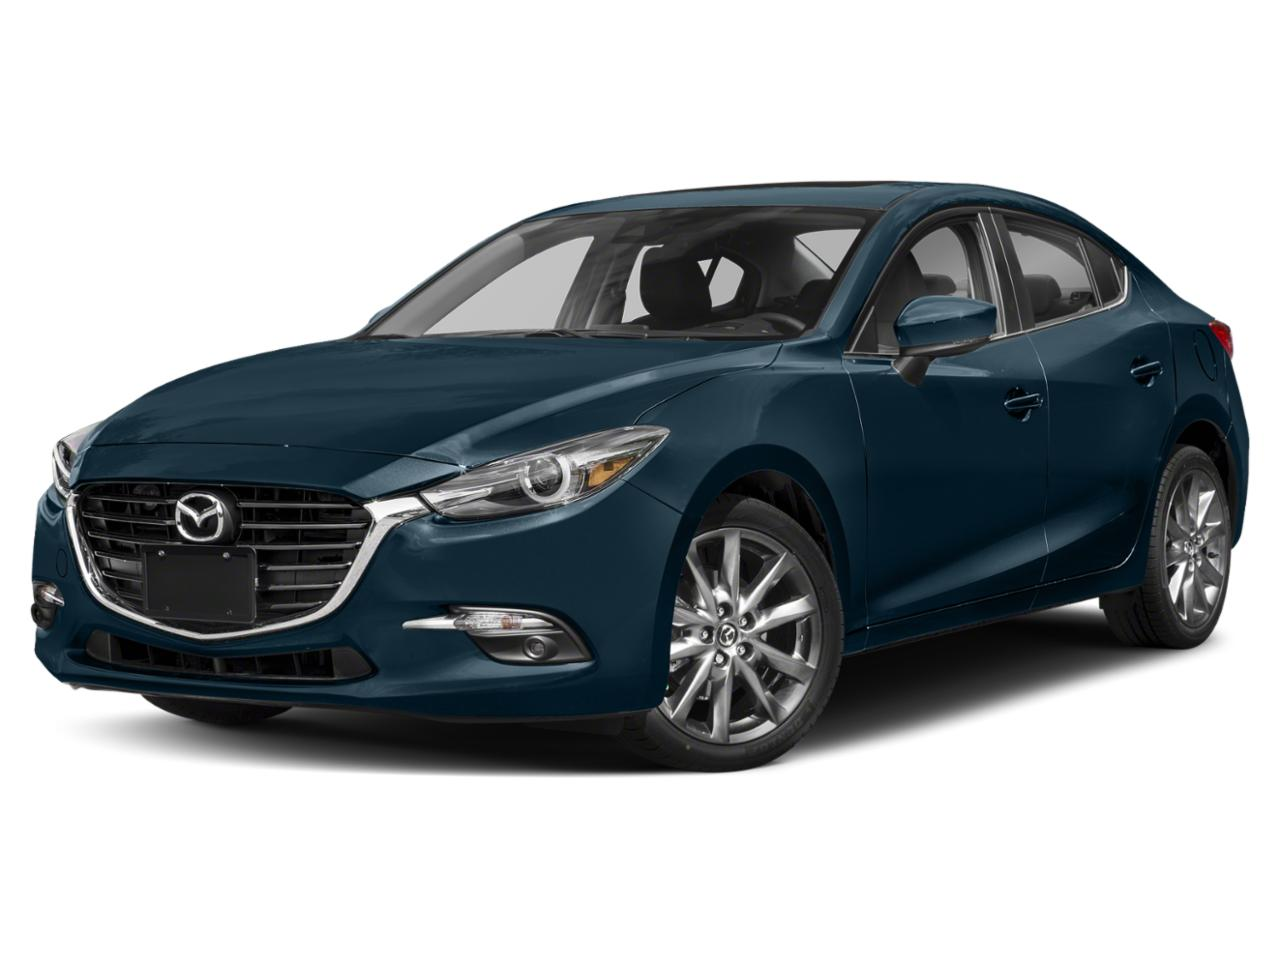 2018 Mazda Mazda3 4-Door Vehicle Photo in Edinburg, TX 78542